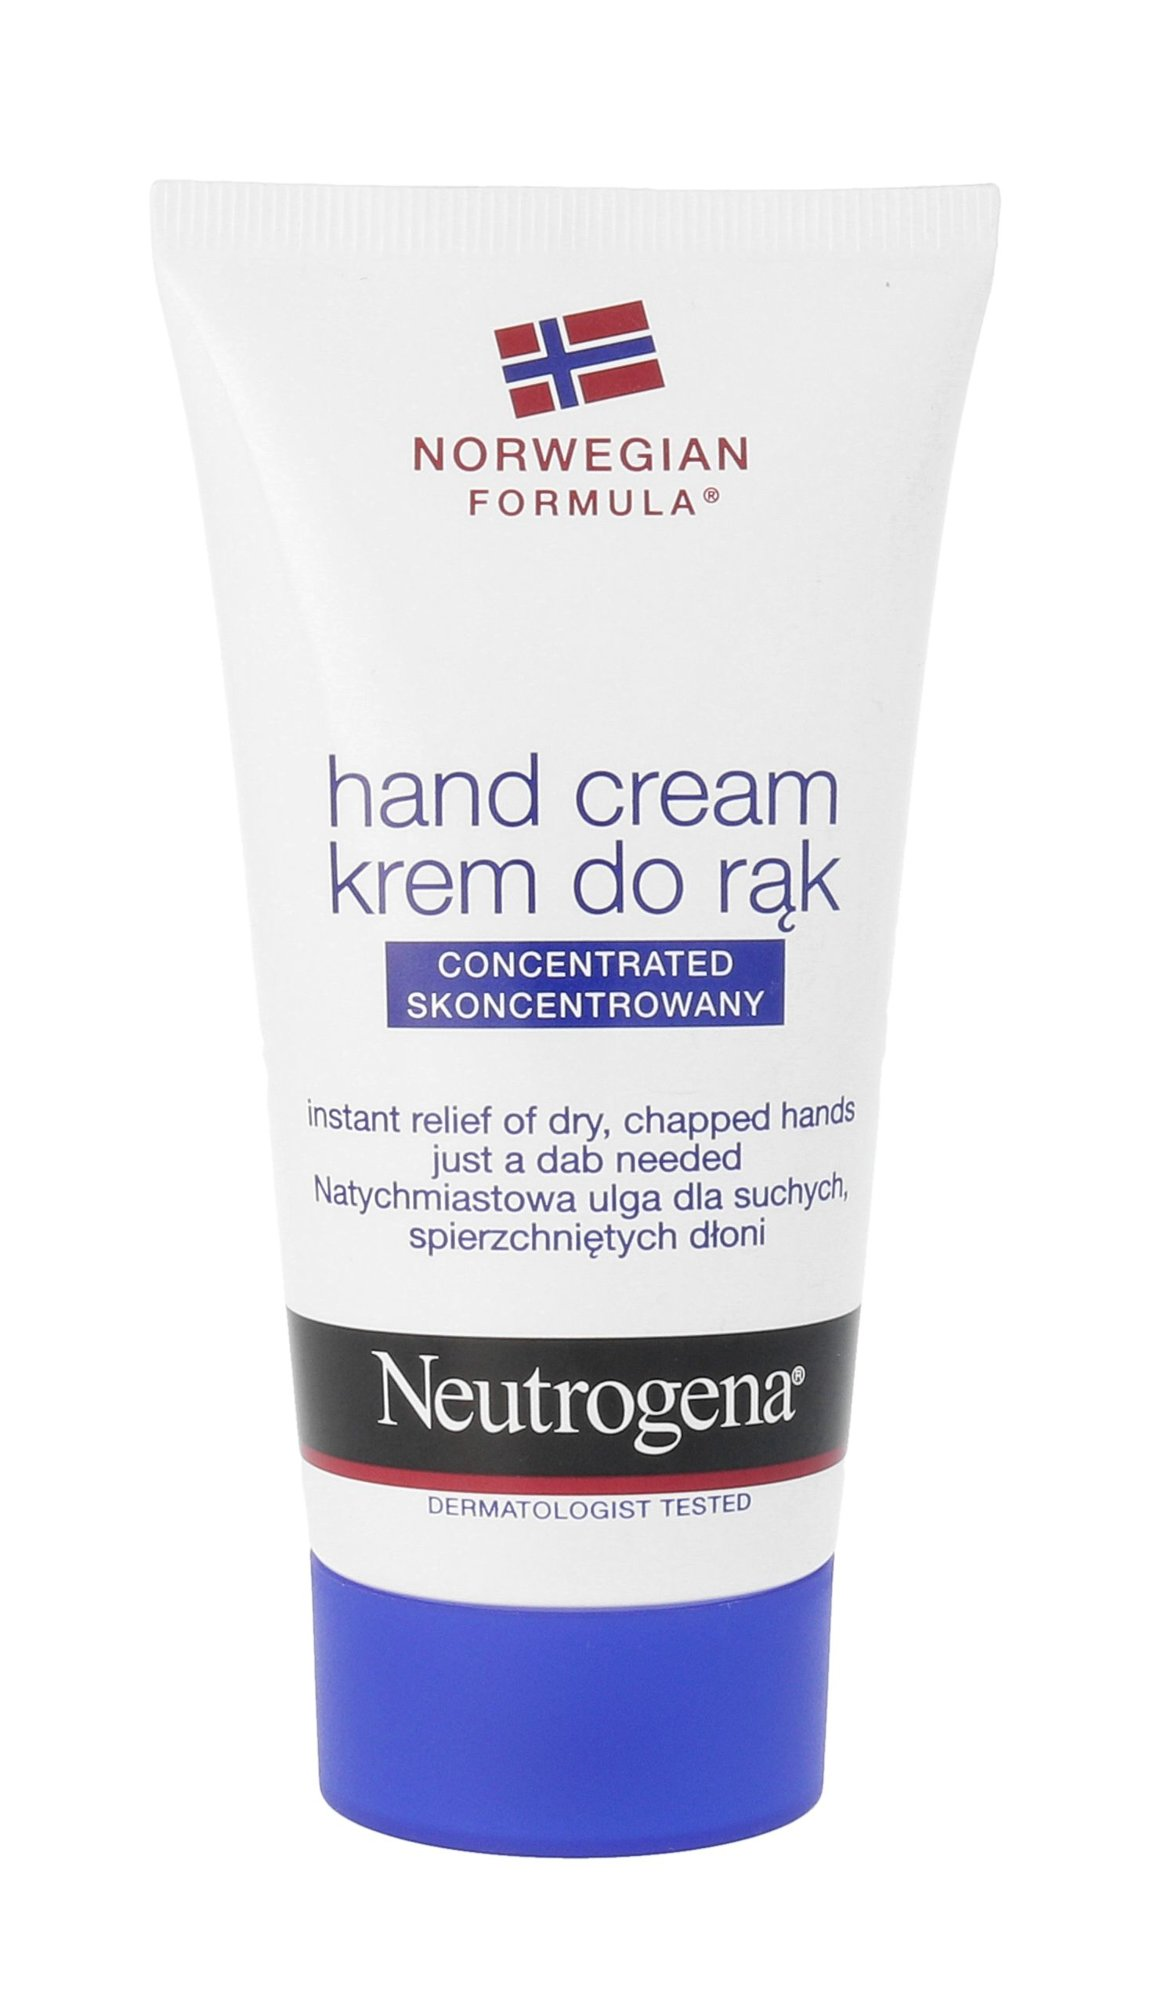 Neutrogena Norwegian Formula Cosmetic 75ml  Scented Hand Cream